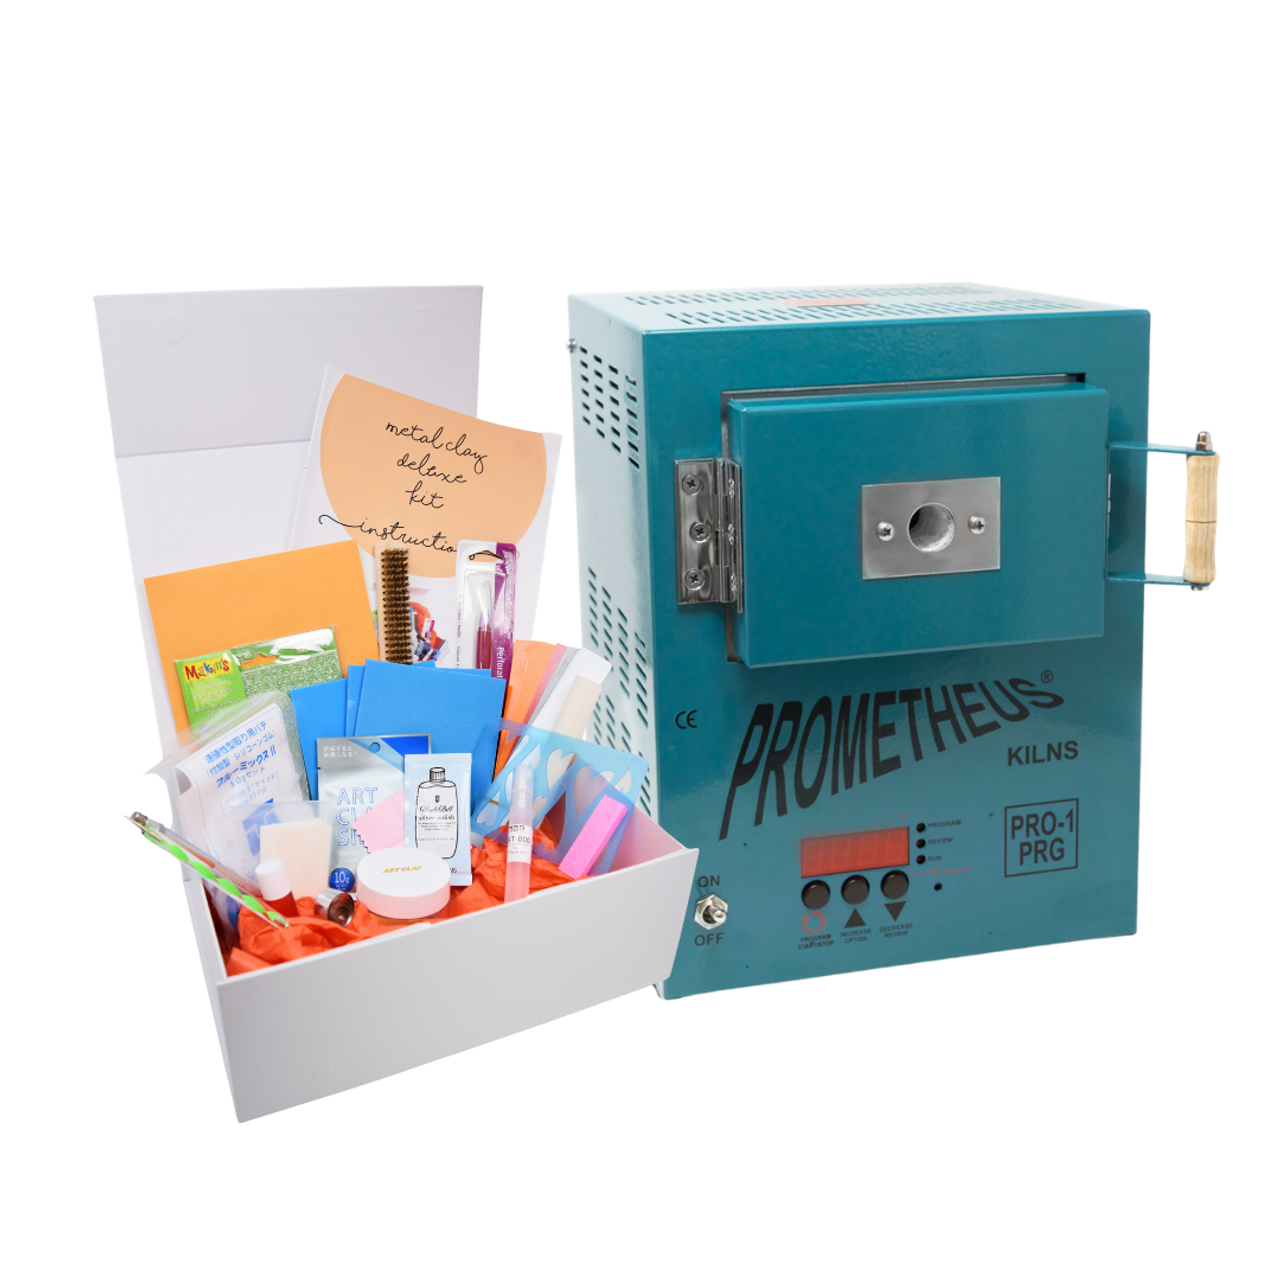 Metal Clay Diamond Deluxe Starter Kit - with Dark Teal Pro1-PRG Kiln The kiln is pre-programmed with our tested and tried reliable programs for silver, glass, and more. You can still set all your own programs if you wish, but this will get you started quickly without any stress!